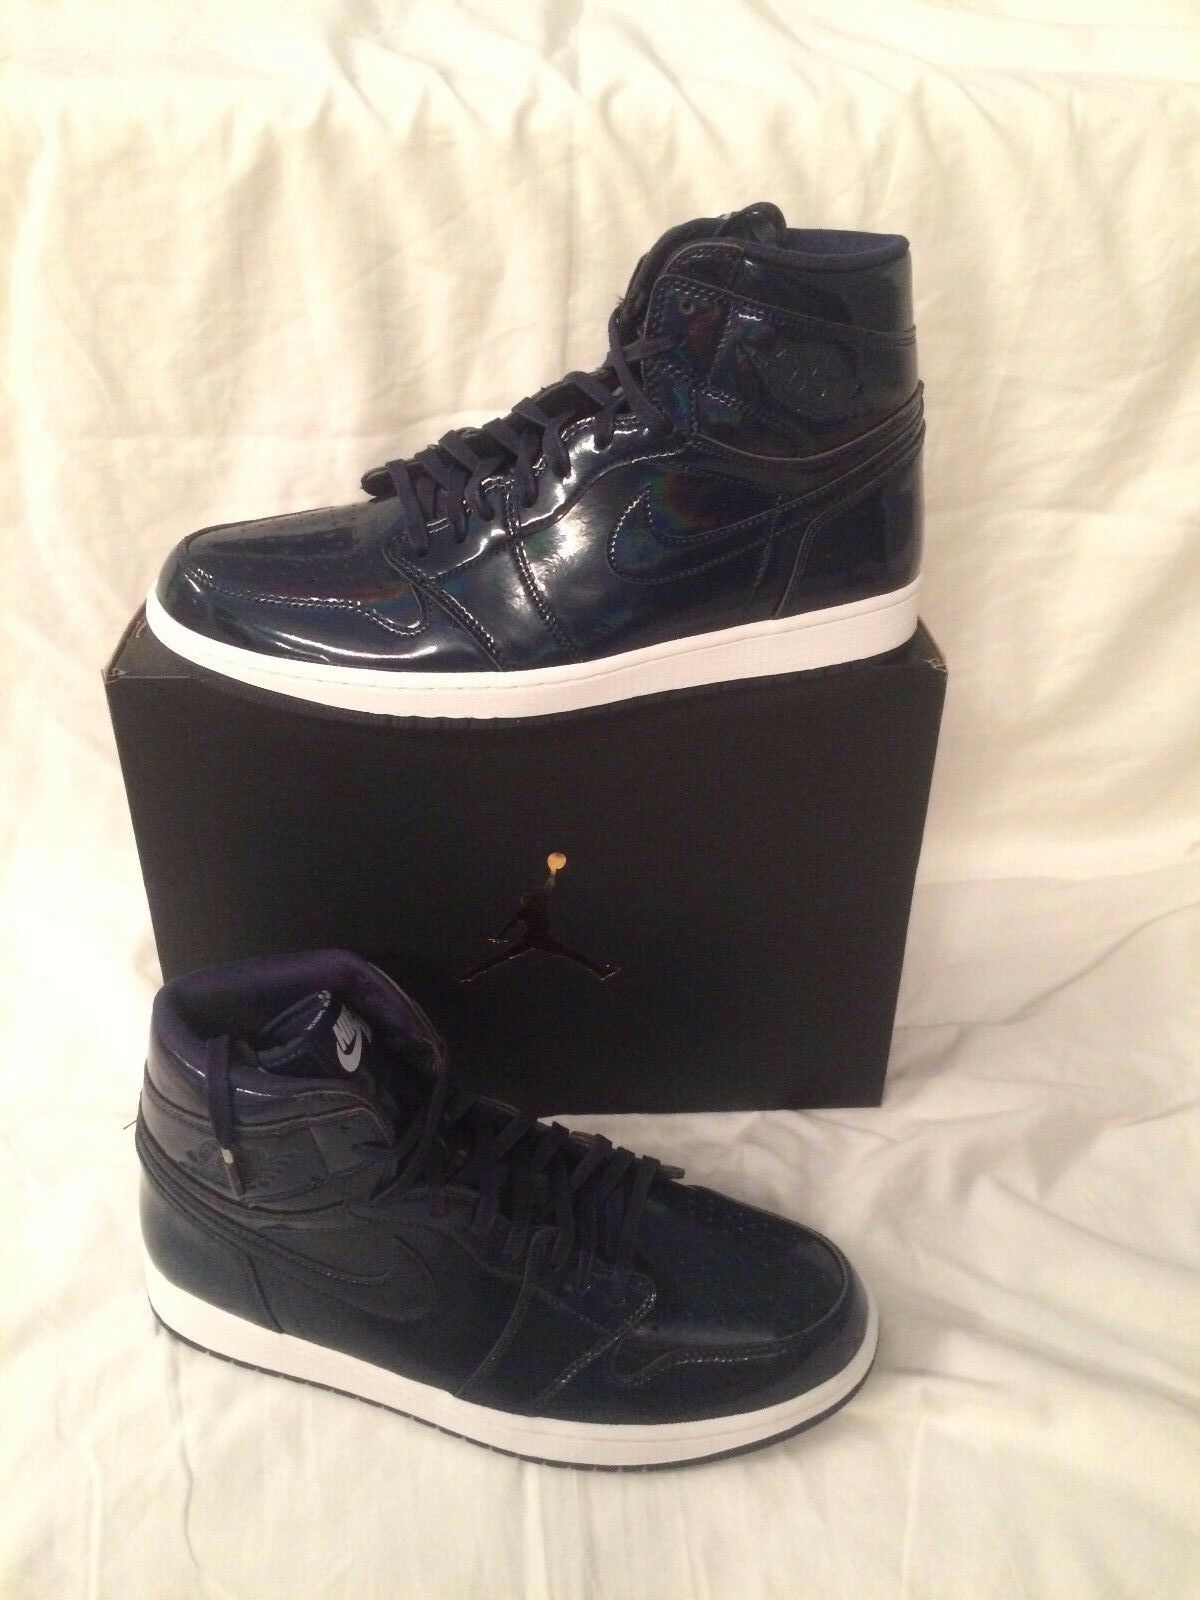 Nike DSM Dover Street Market x Air Jordan 1 High  sz 14   DS with Receipt & Box